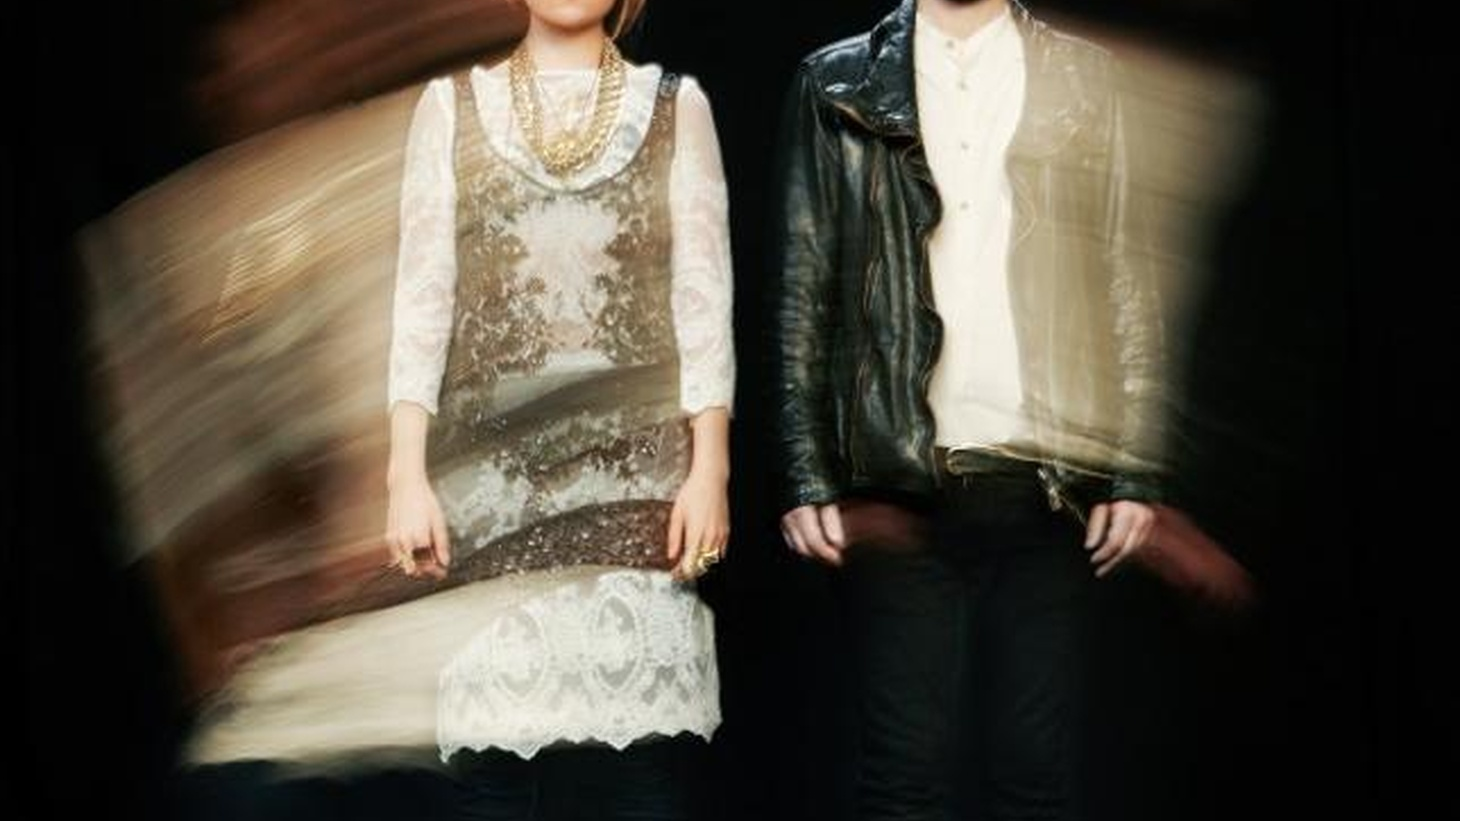 Duke Spirit's front-woman Liela Moss and guitarist/bassist Toby Butler have formed a new band called Roman Remains, playing a fiery mix of energetic pop.